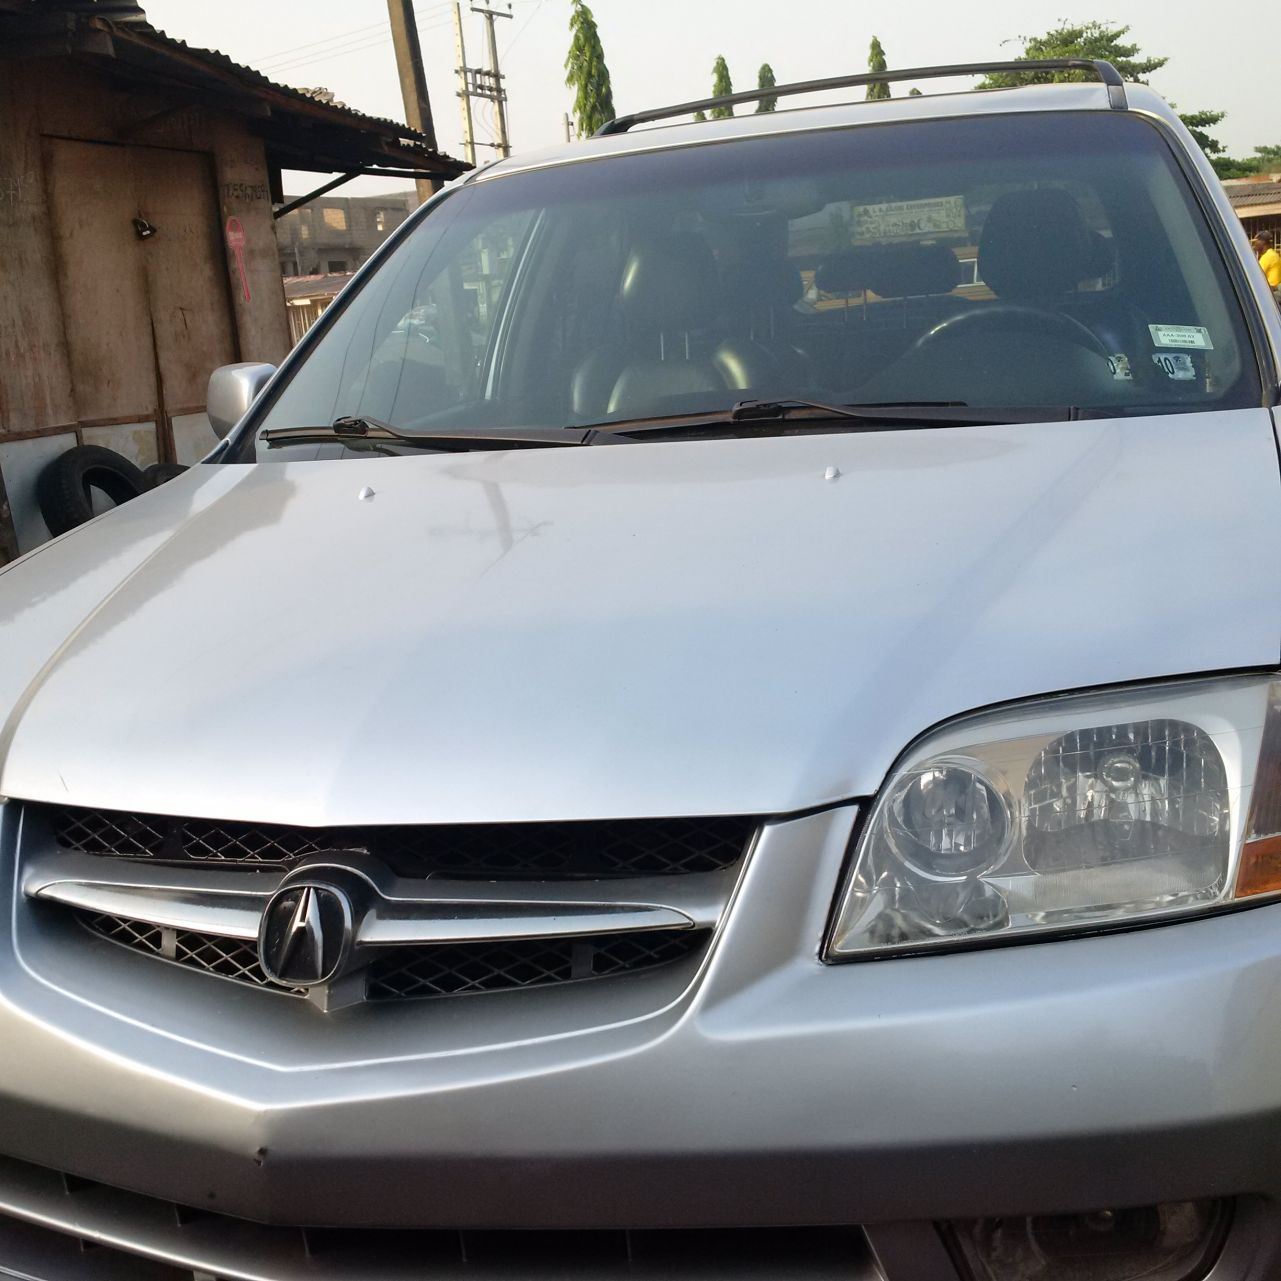 Registered 2002 Acura Mdx For Sale